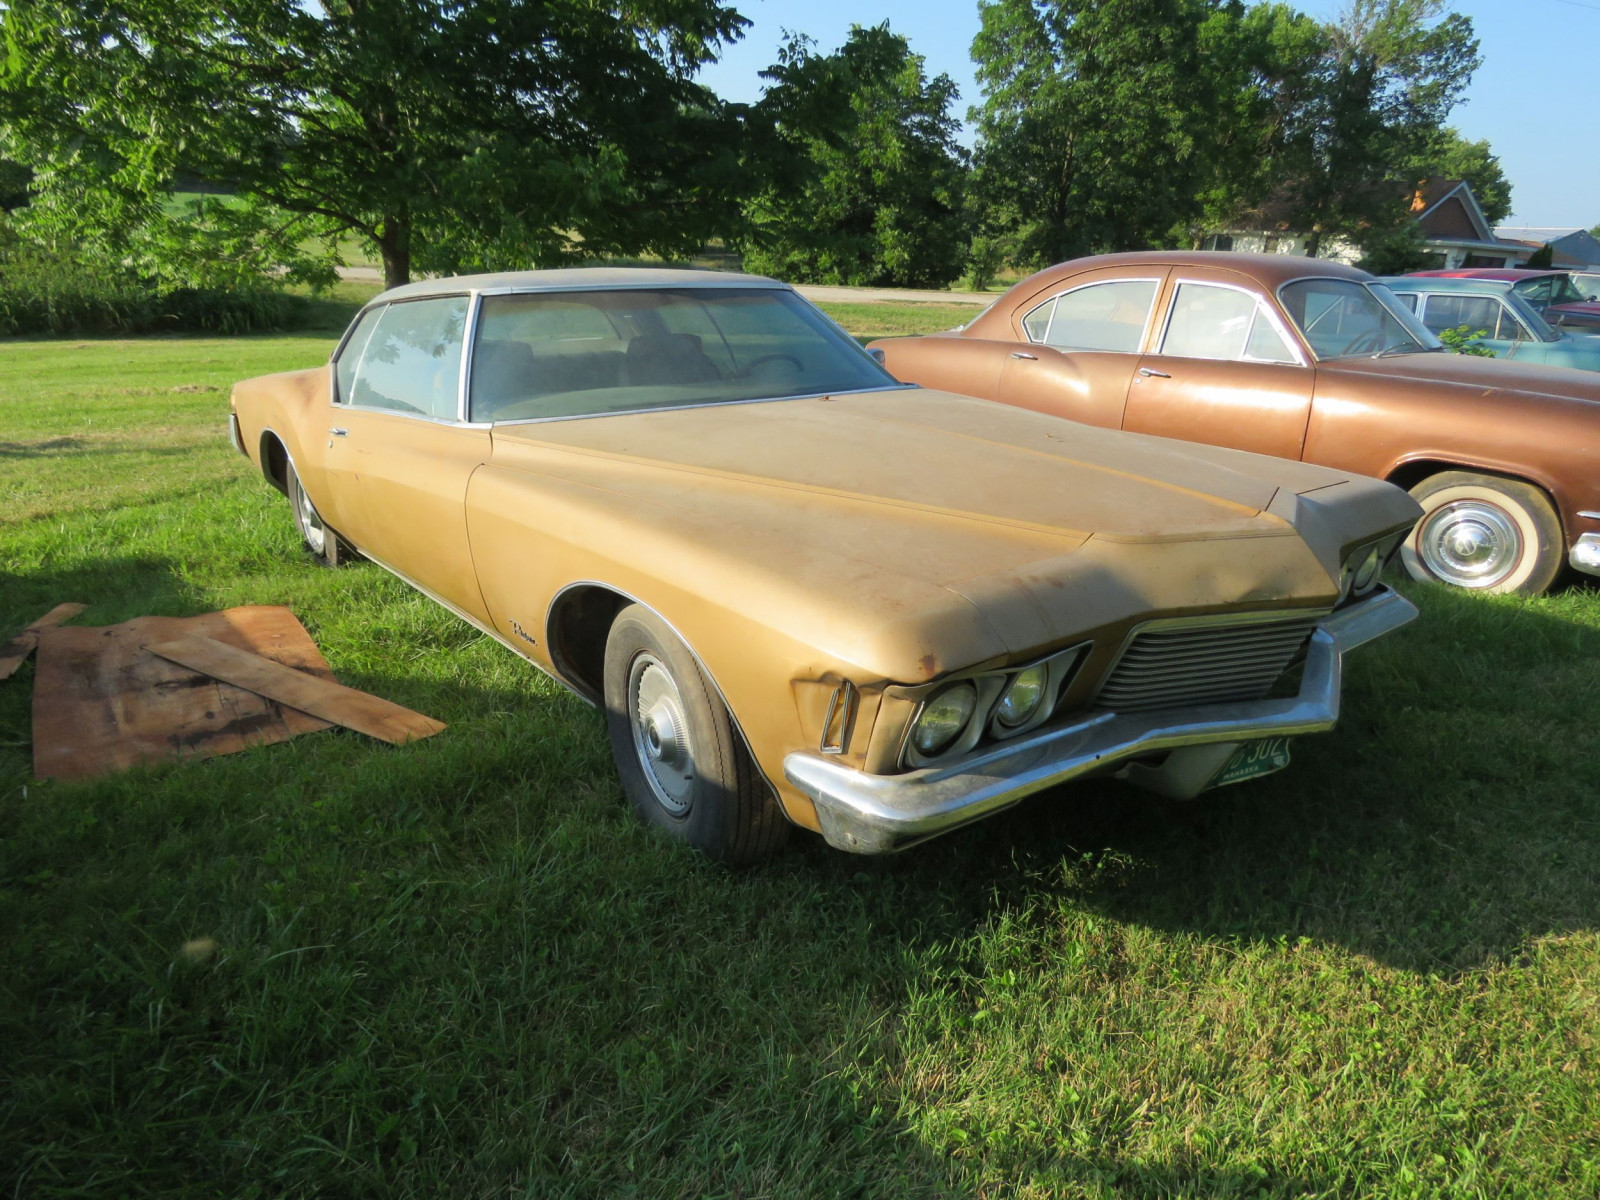 1971 Buick Boat tail Riviera - Image 3